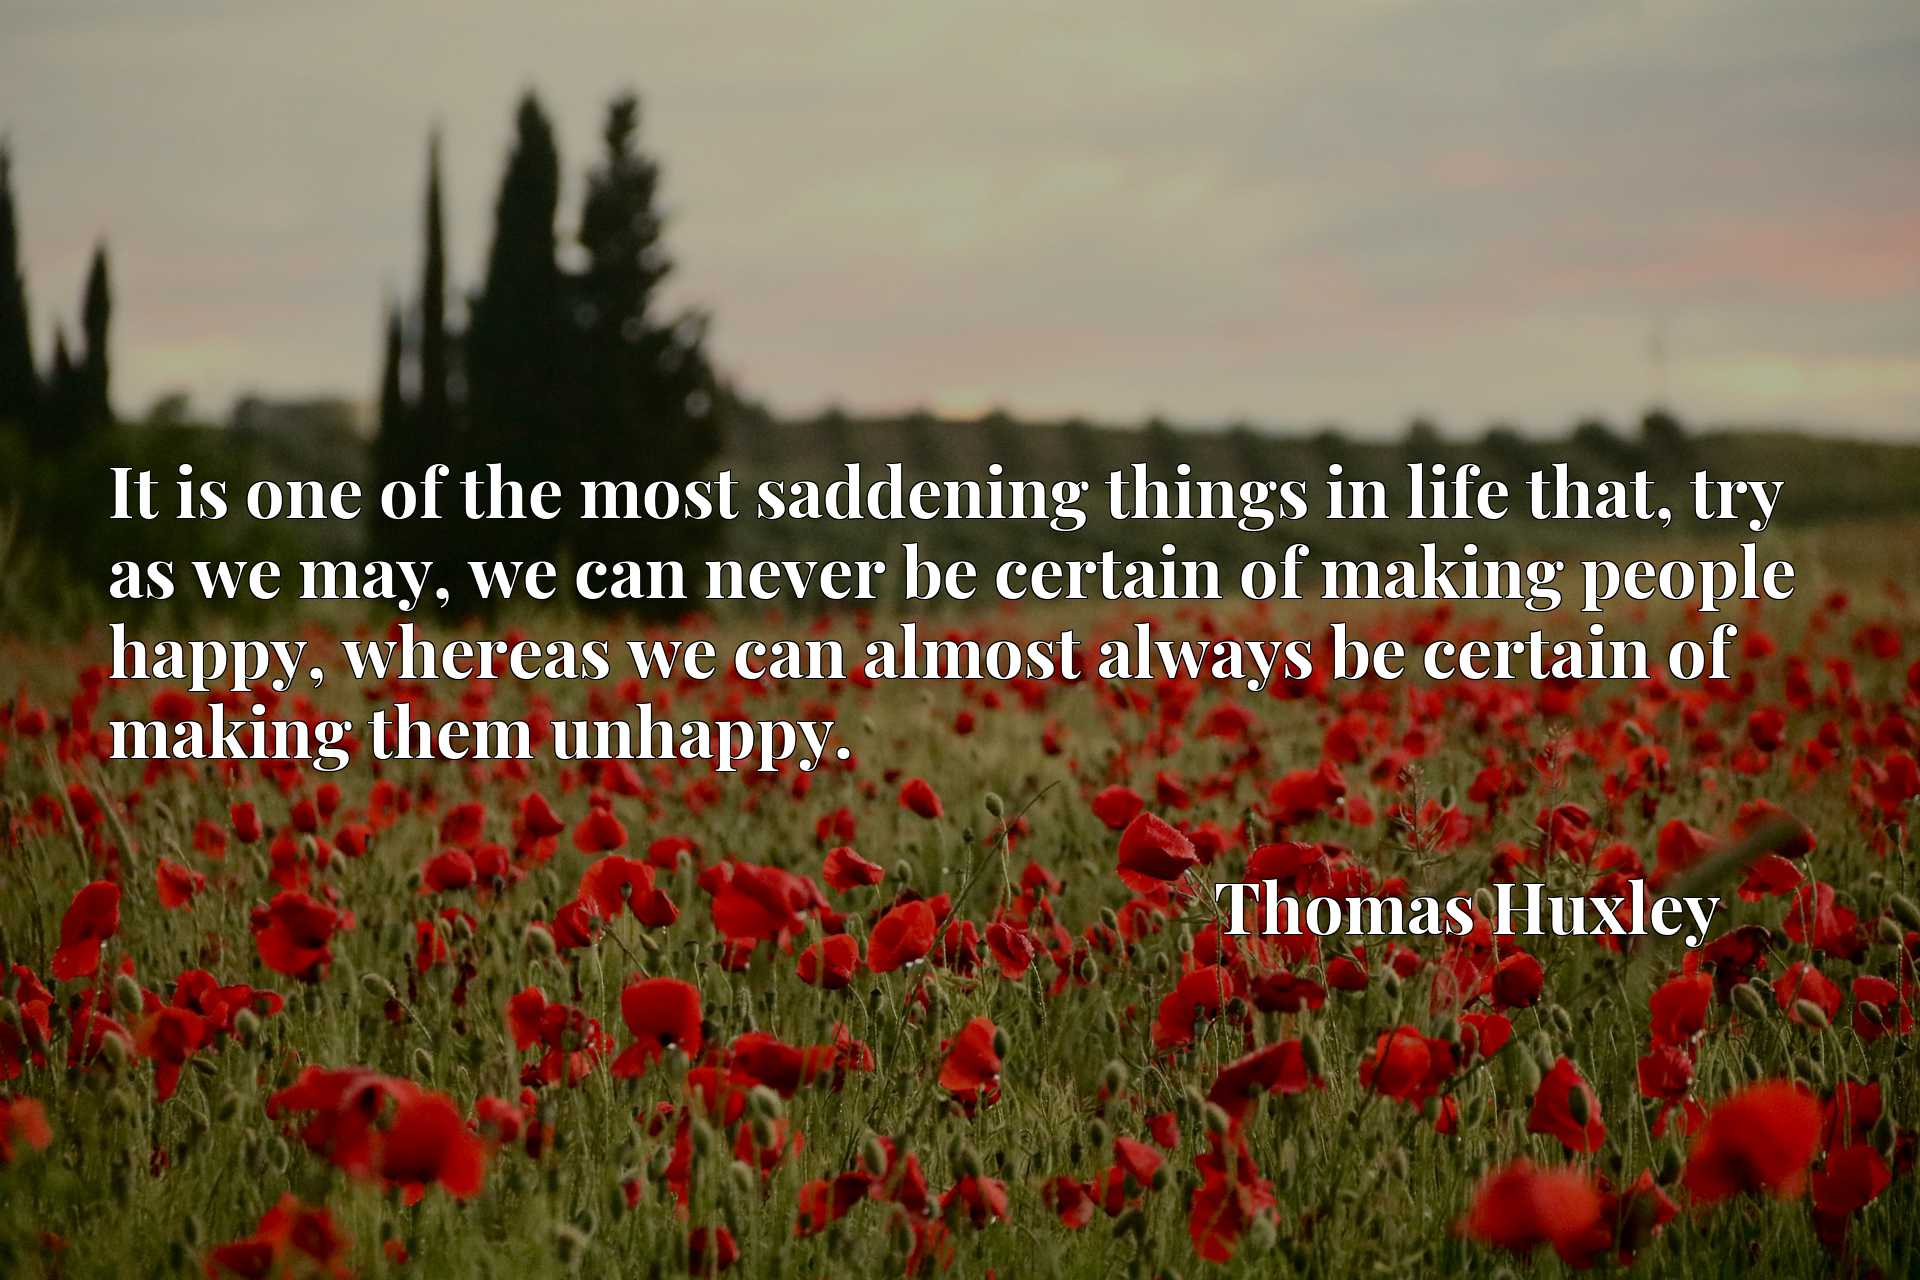 It is one of the most saddening things in life that, try as we may, we can never be certain of making people happy, whereas we can almost always be certain of making them unhappy.